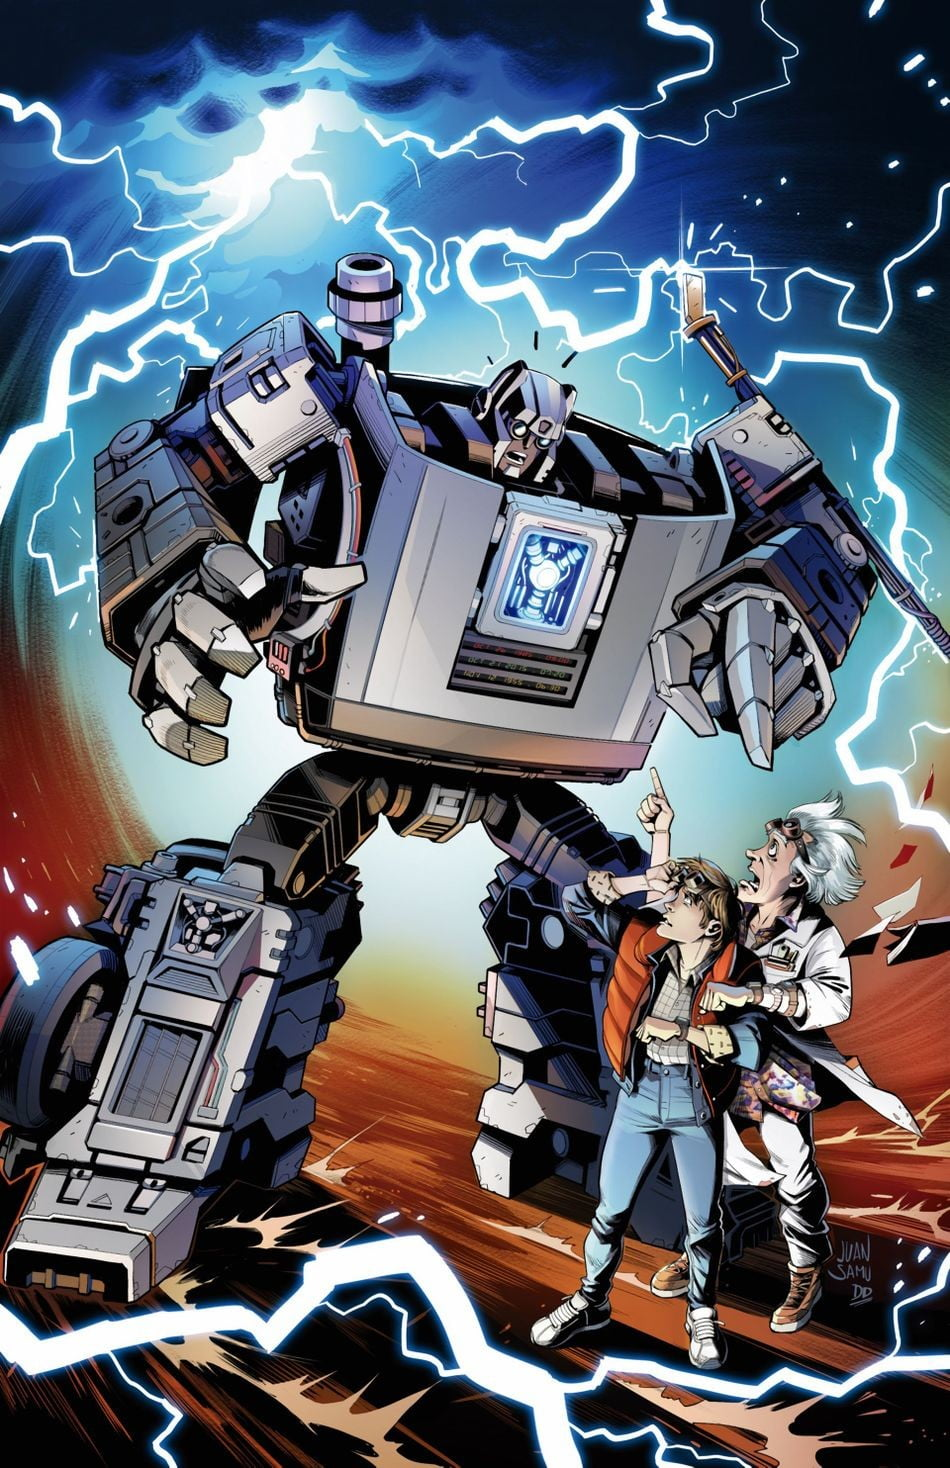 juguete crossover transformers back to the future uploadscardimage13779803abae47b 0607 4ccc 8296 23b239bad640 jpgfull fit in